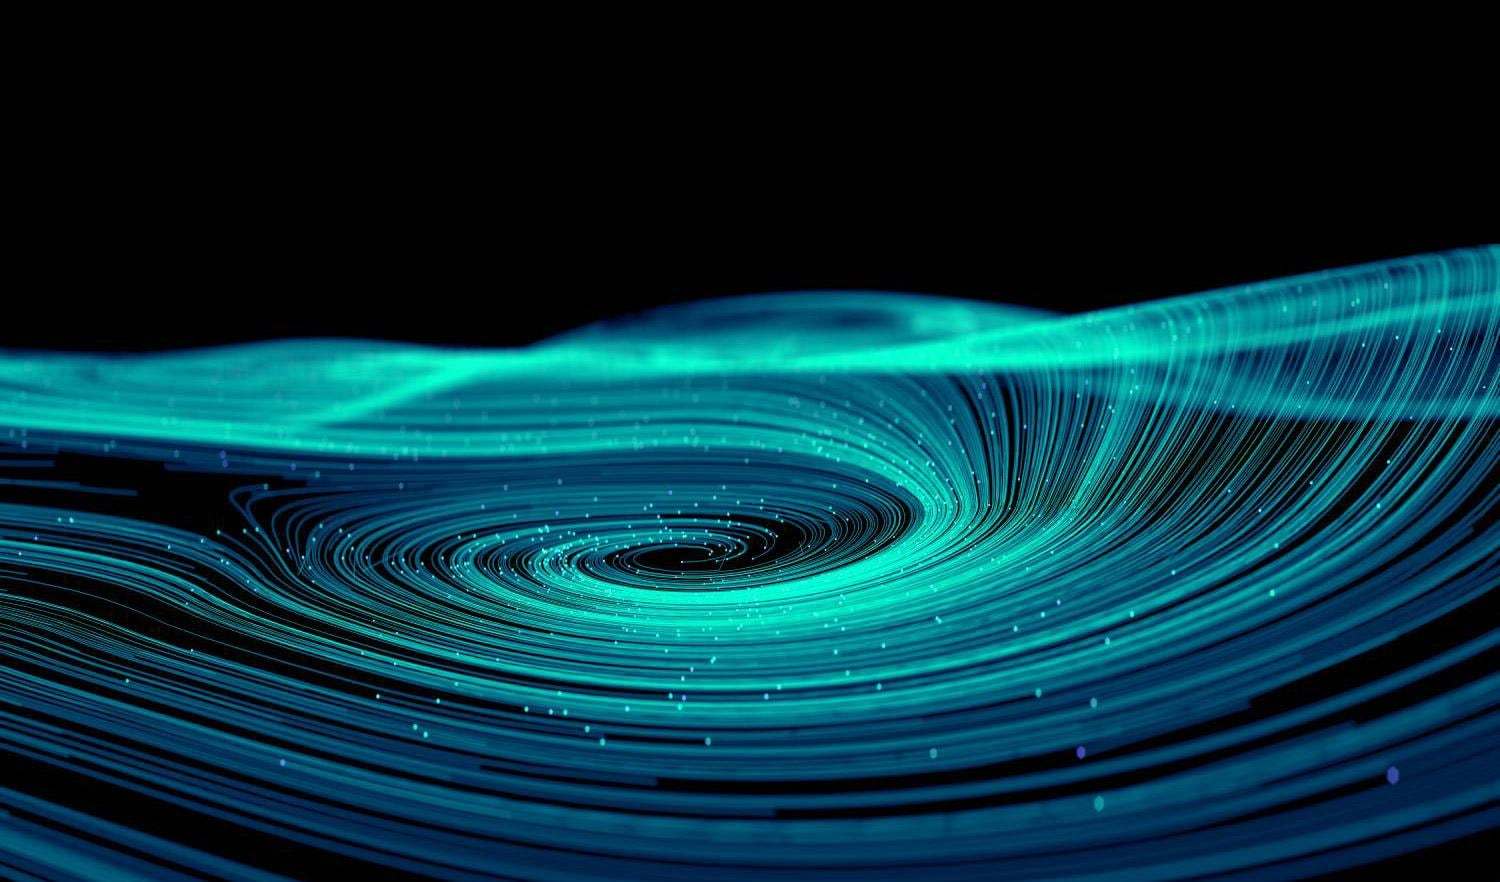 Blue and green swirl abstract artwork